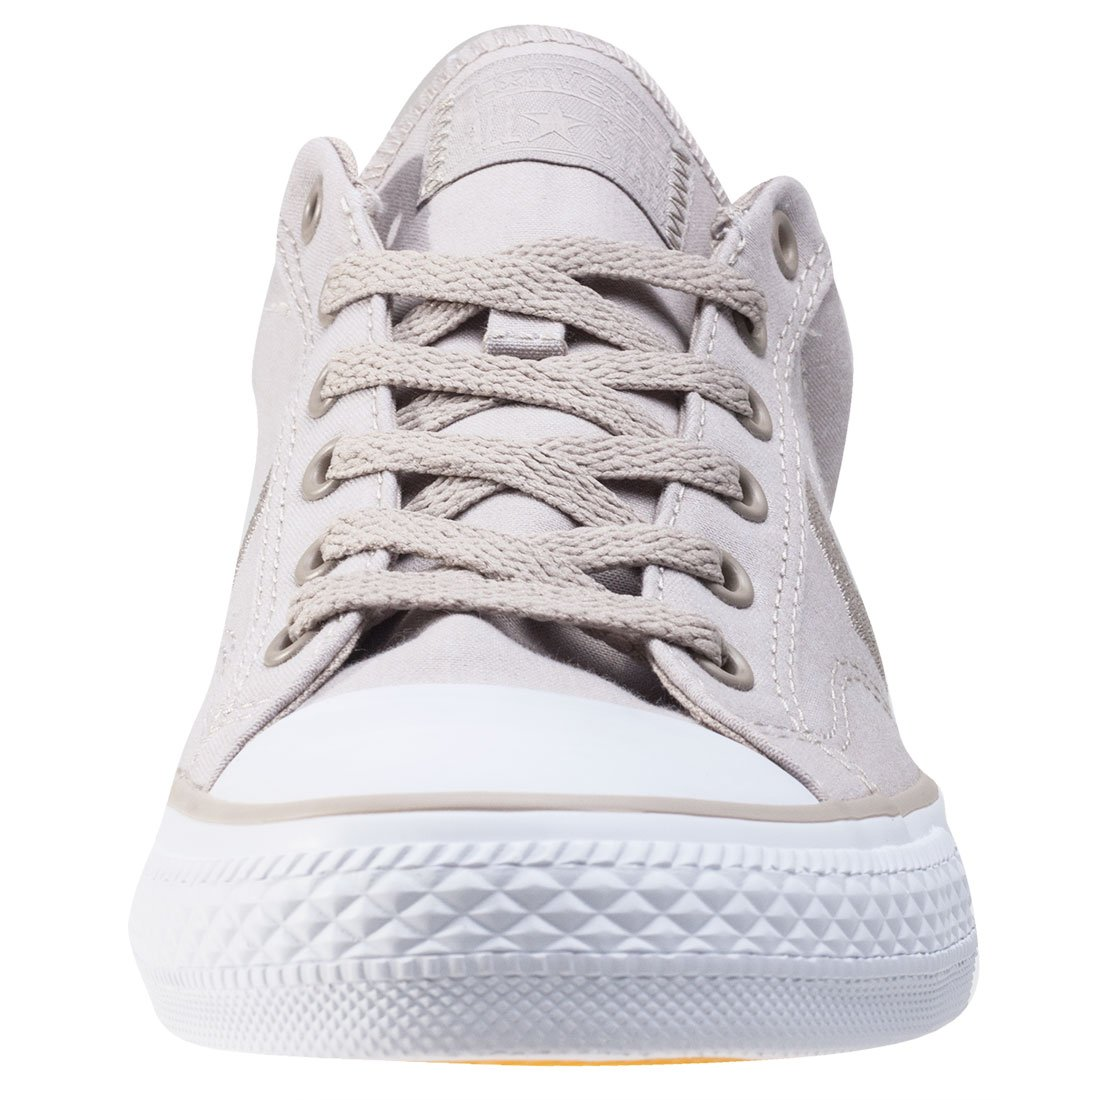 new product 93fa2 49874 Adidas Cons Star Player Ox, Chaussures de Basketball Hommes, Beige  (Papyruswhite Papyruswhite), 45 EU  Amazon.fr  Chaussures et Sacs